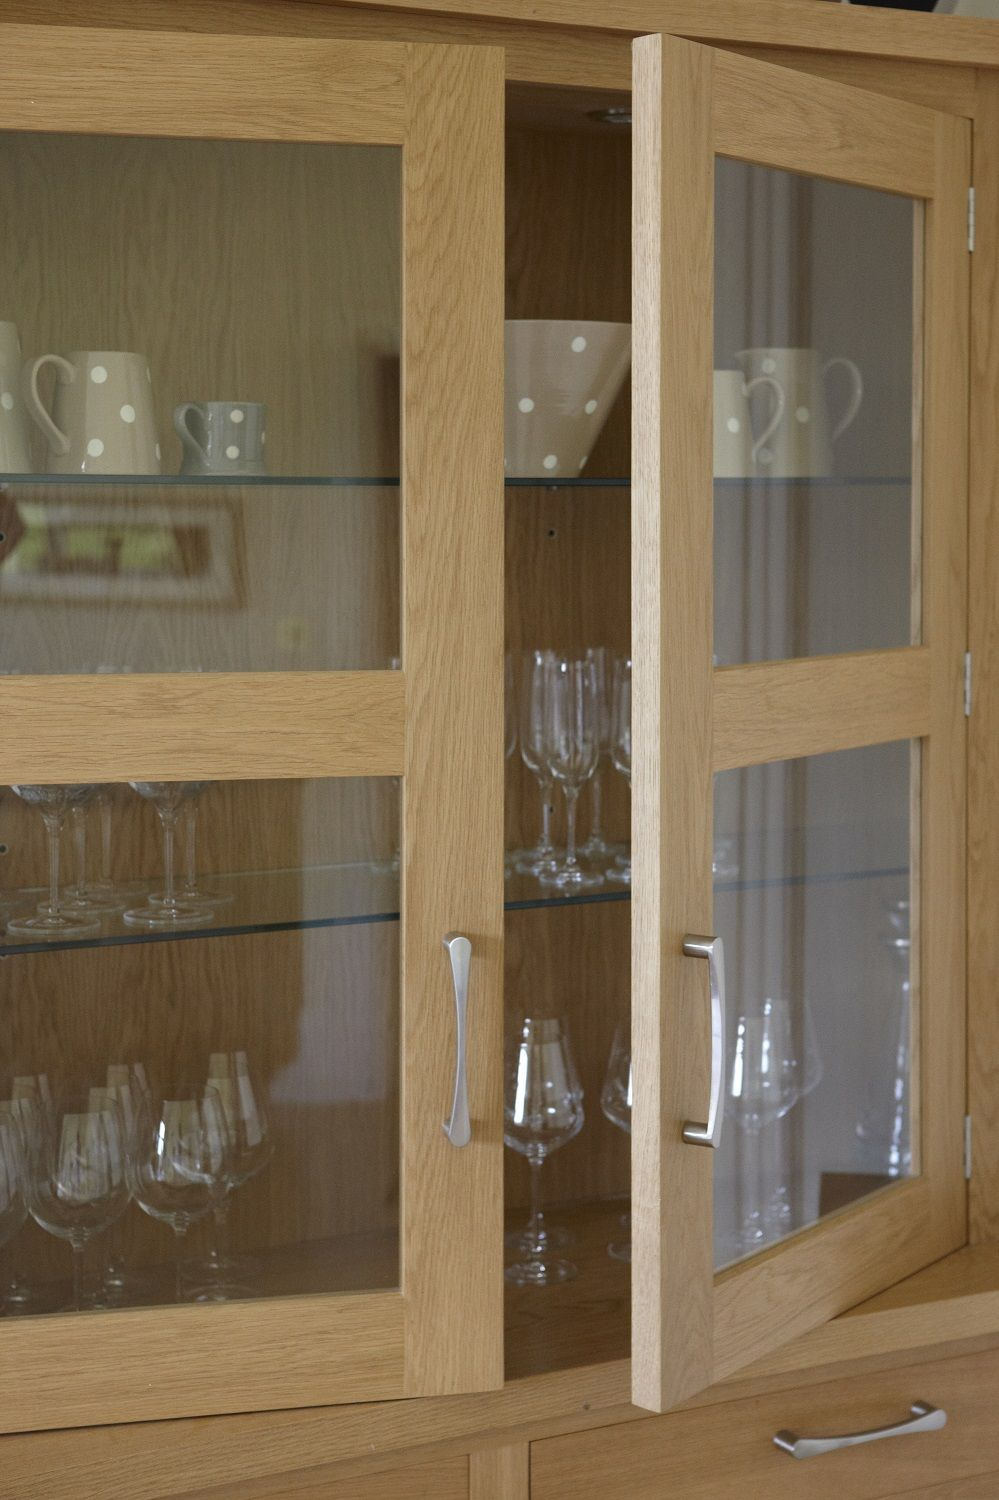 Glass Kitchen Cupboard Units Reveal Glass Shelving For Displaying Glassware  And Crockery. Designed By Giles